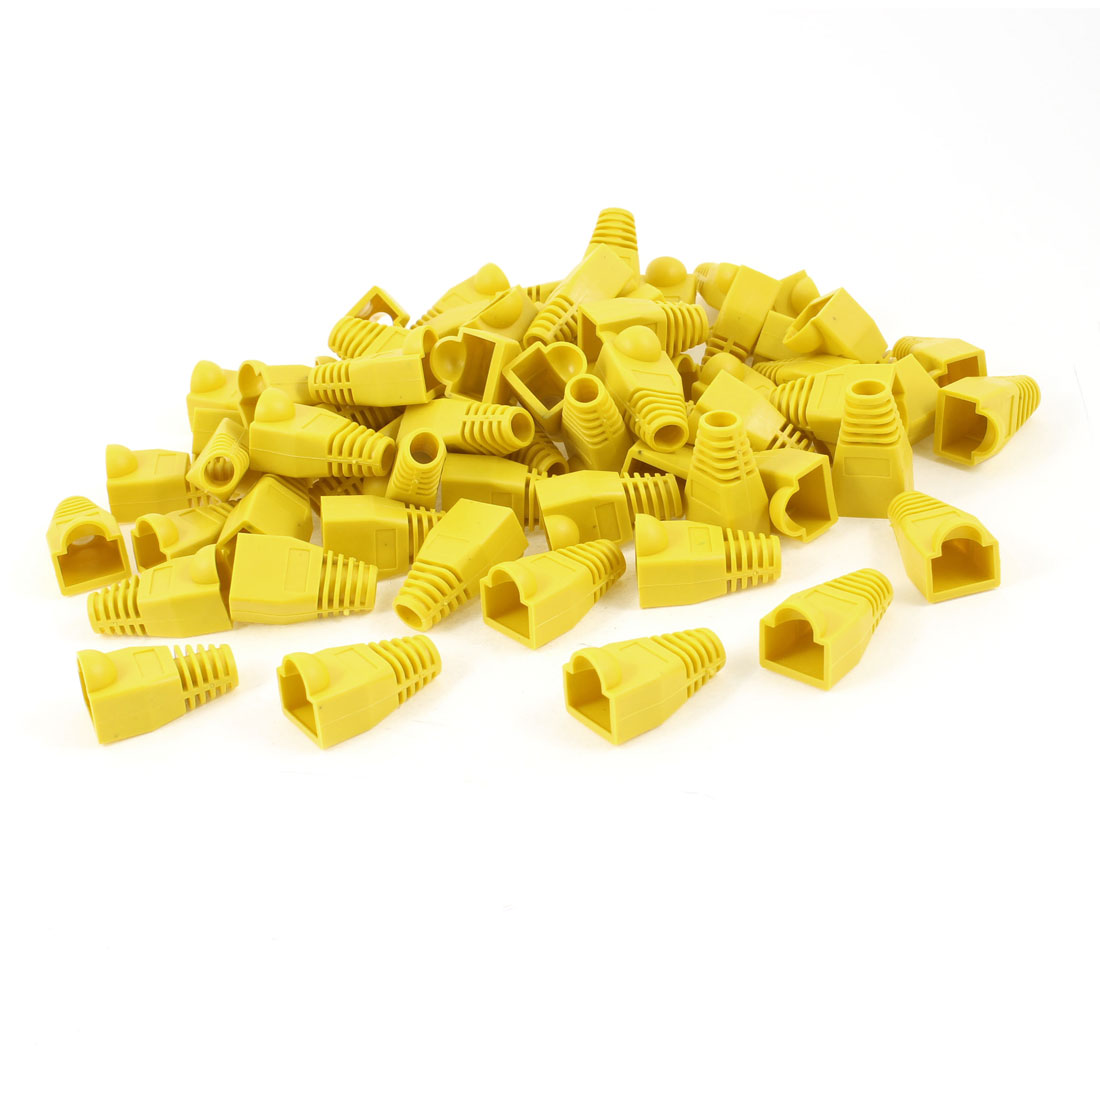 50 Pcs Yellow Soft Plastic Hood Cover Boots for RJ45 Connector